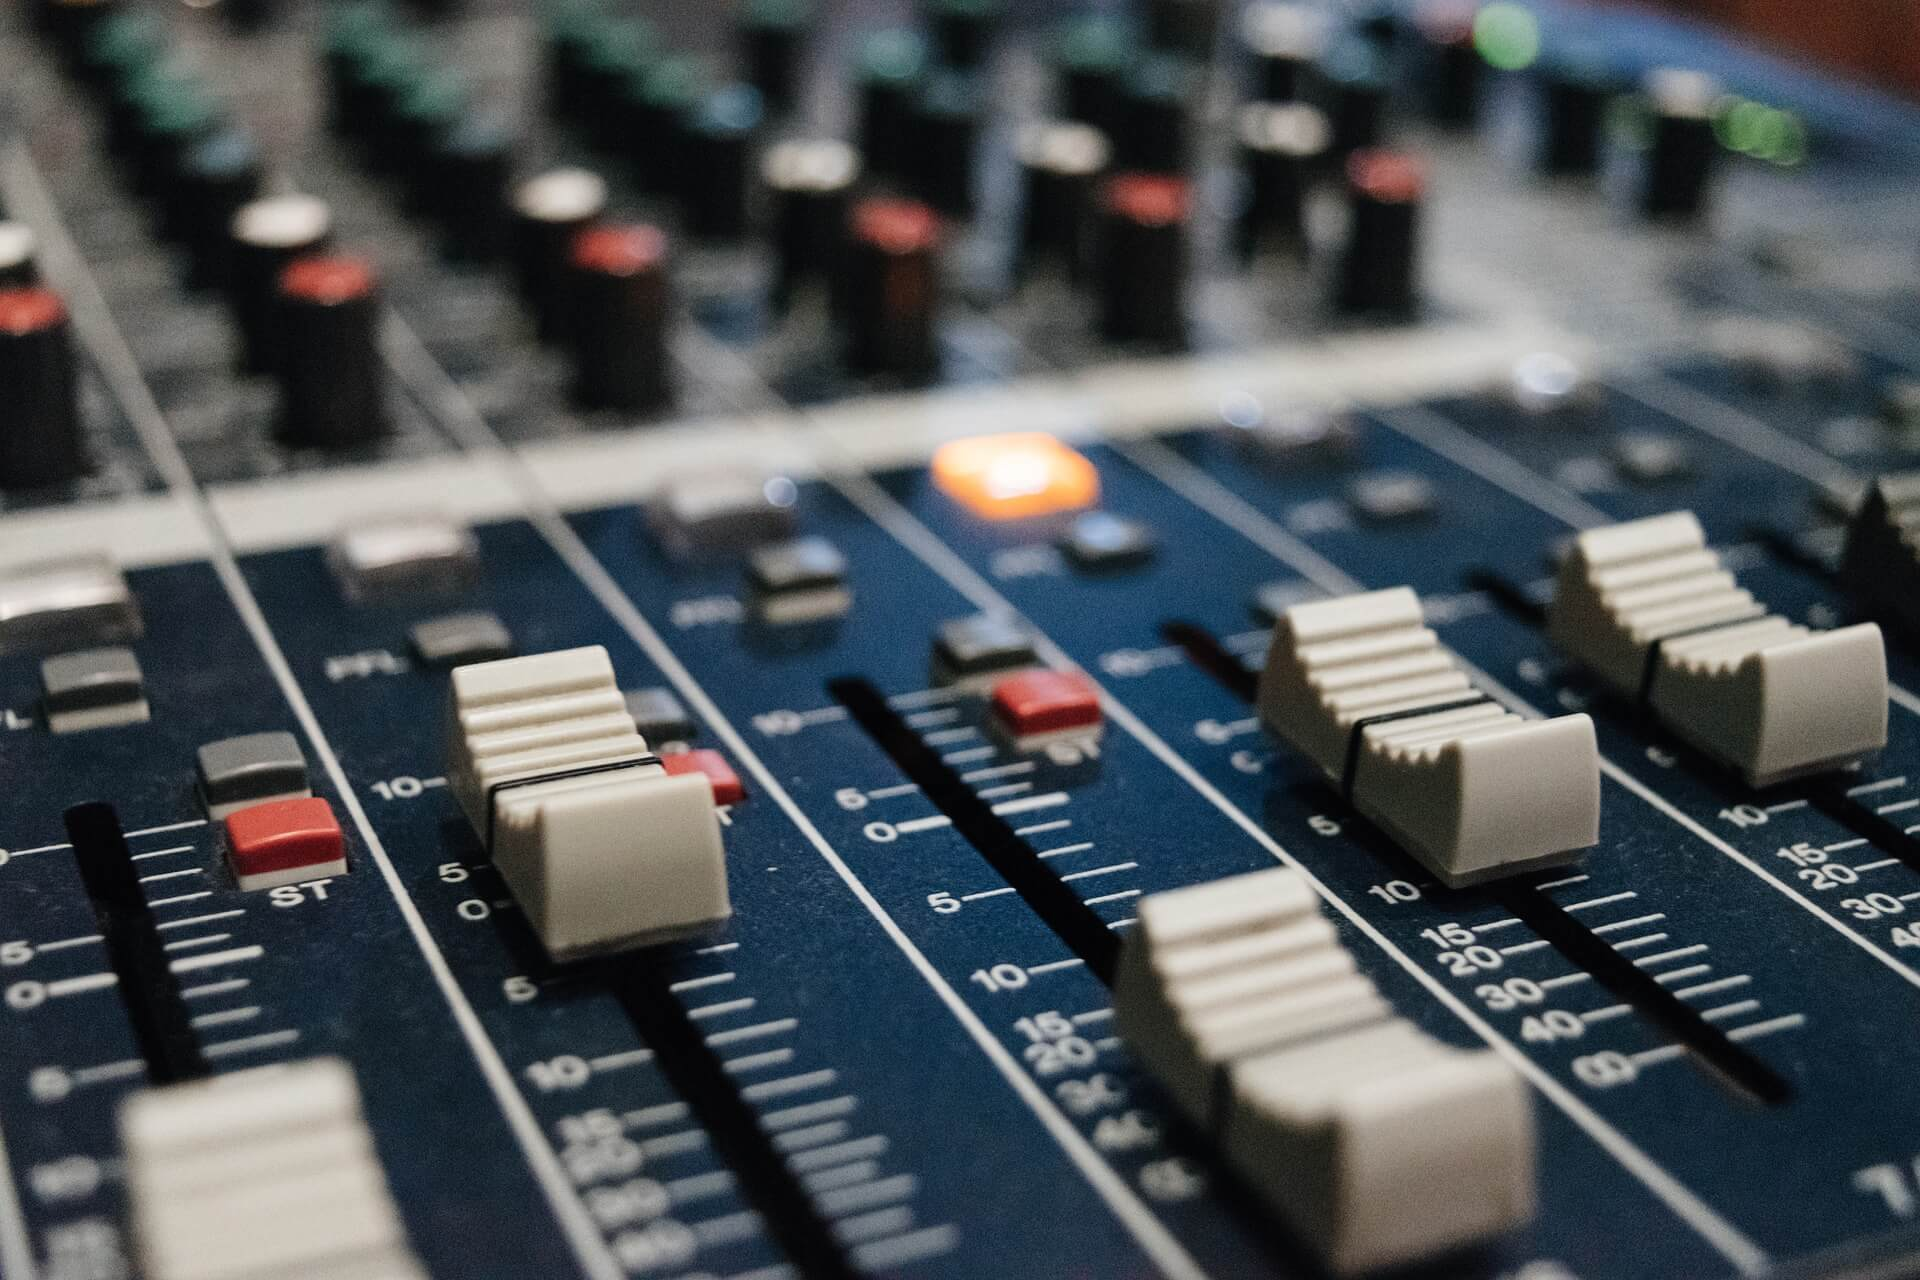 AV equipment brings your event to life and gives it a professional edge.